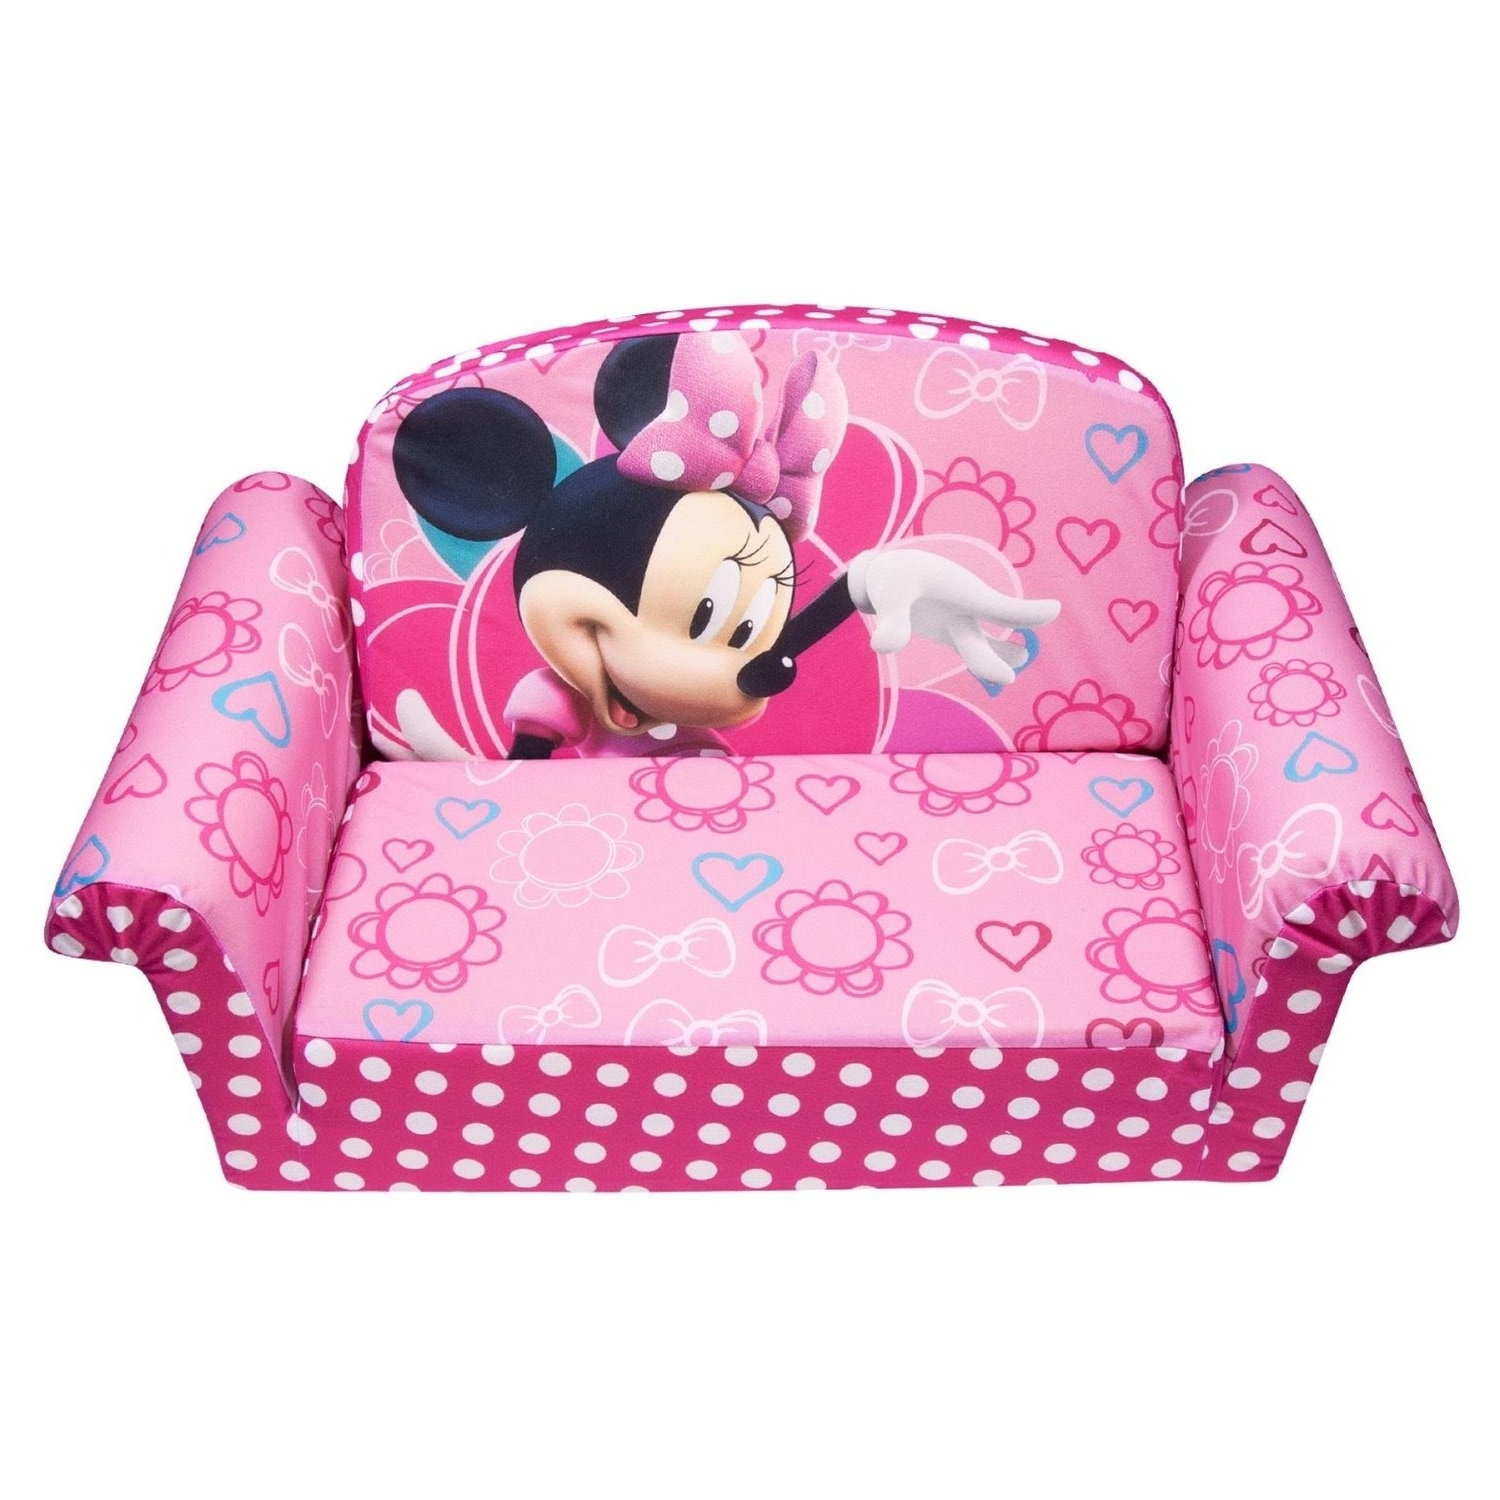 Famous Disney Sofa Chairs Inside Review: Marshmallow Children's Furniture – 2 In 1 Flip Open Sofa (View 6 of 15)